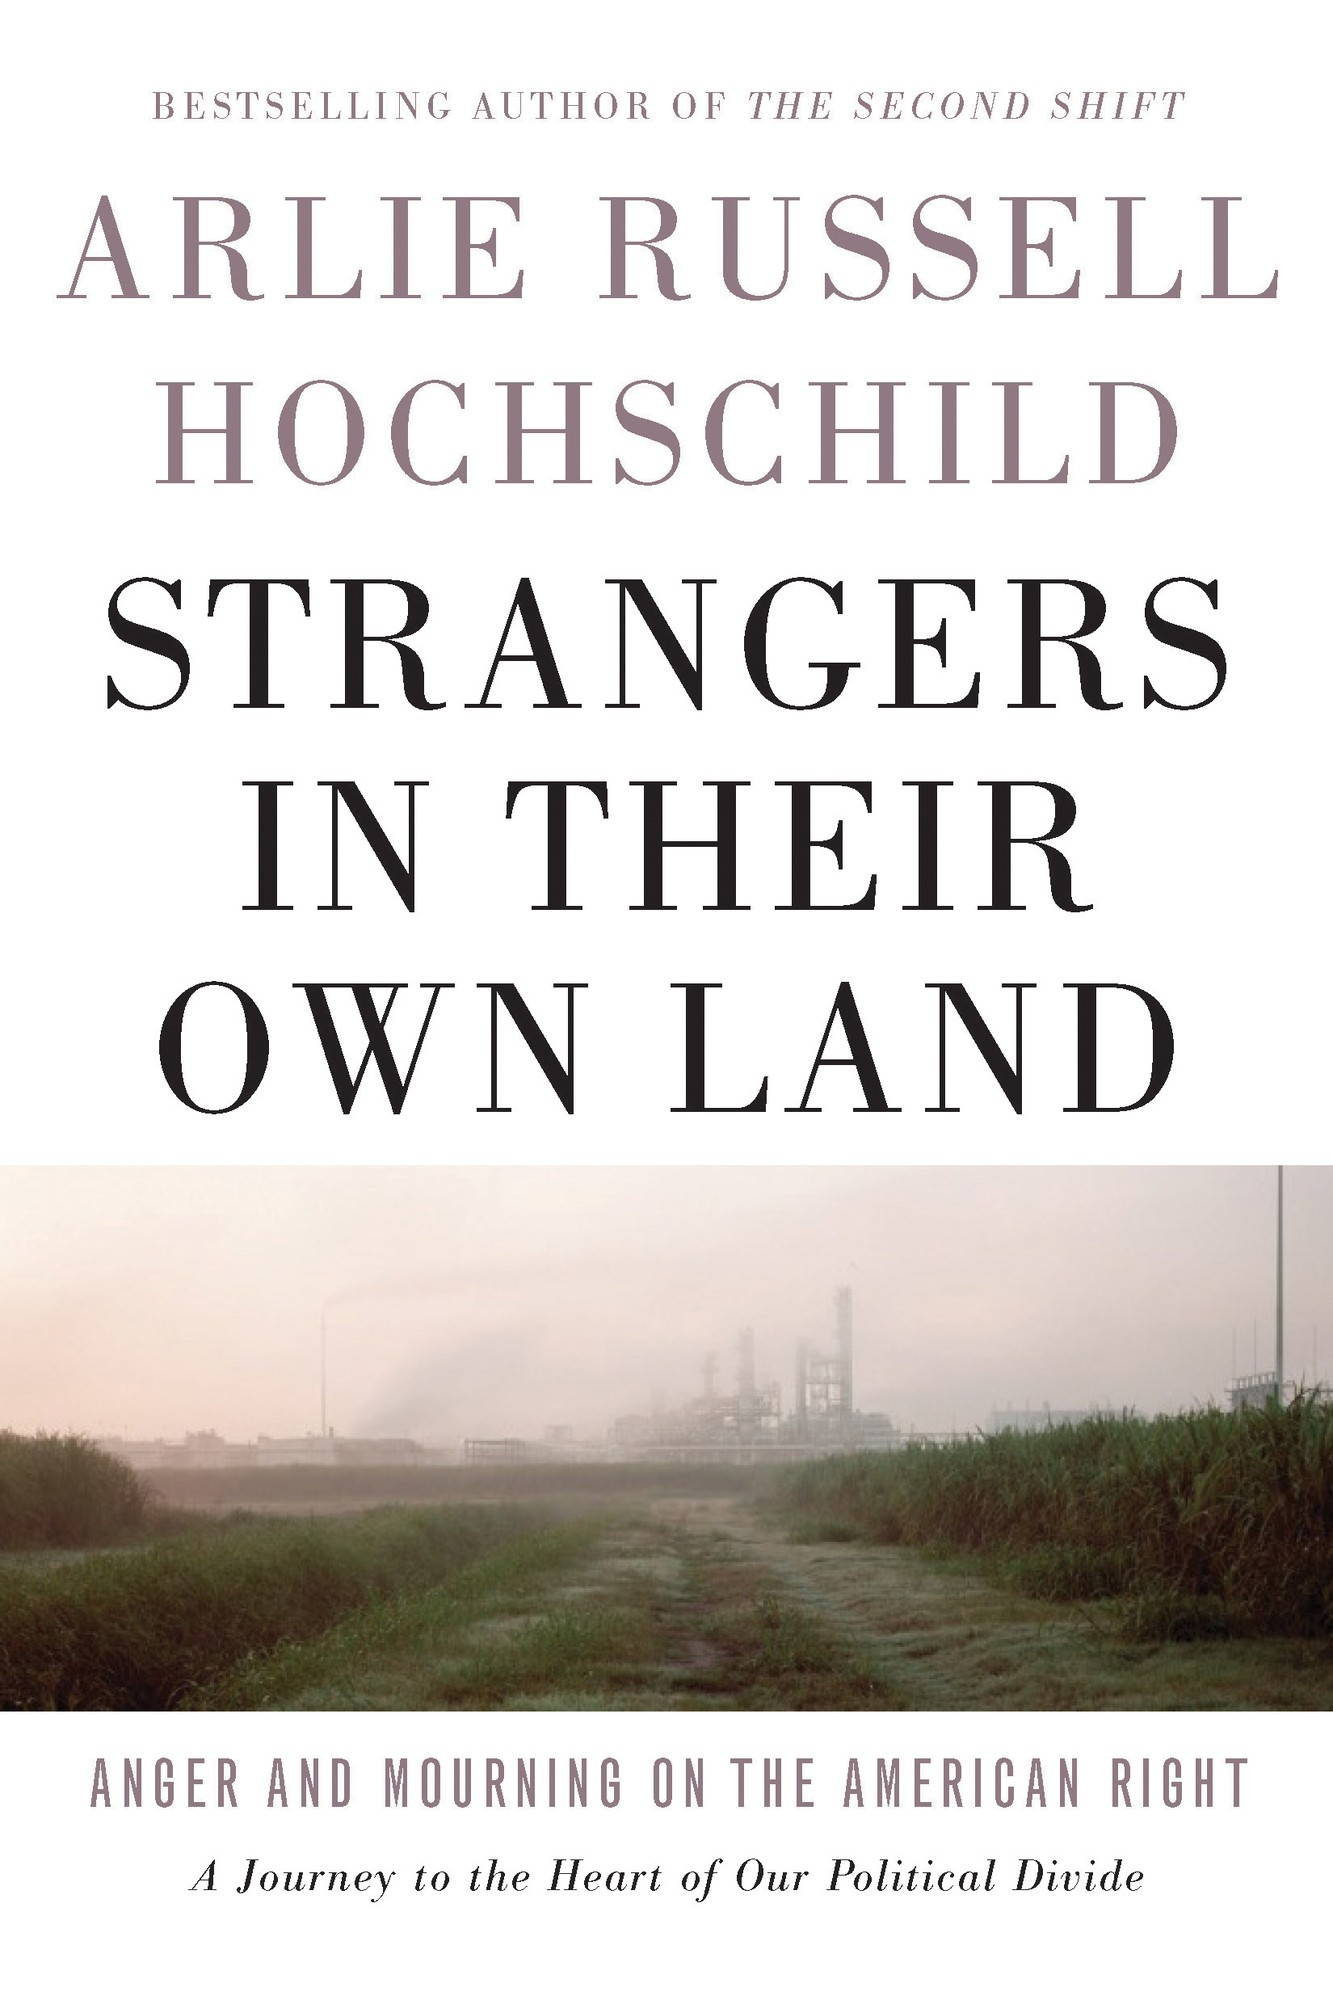 Strangers in Their Own Land, by Arlie Russell Hochschild.